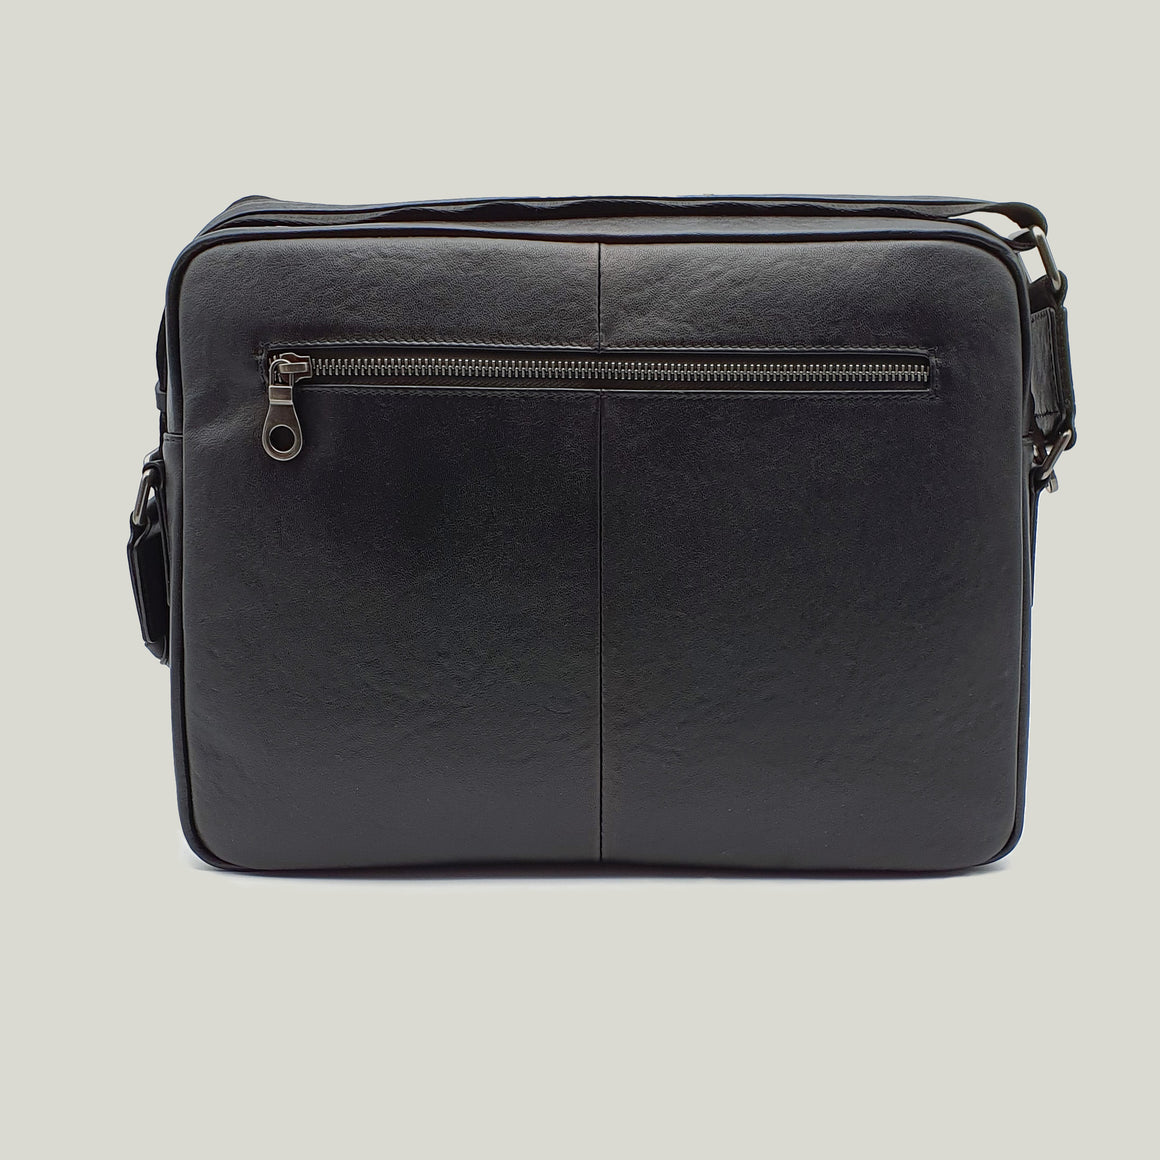 Laptop bag, Series-Five Black - Dminimis